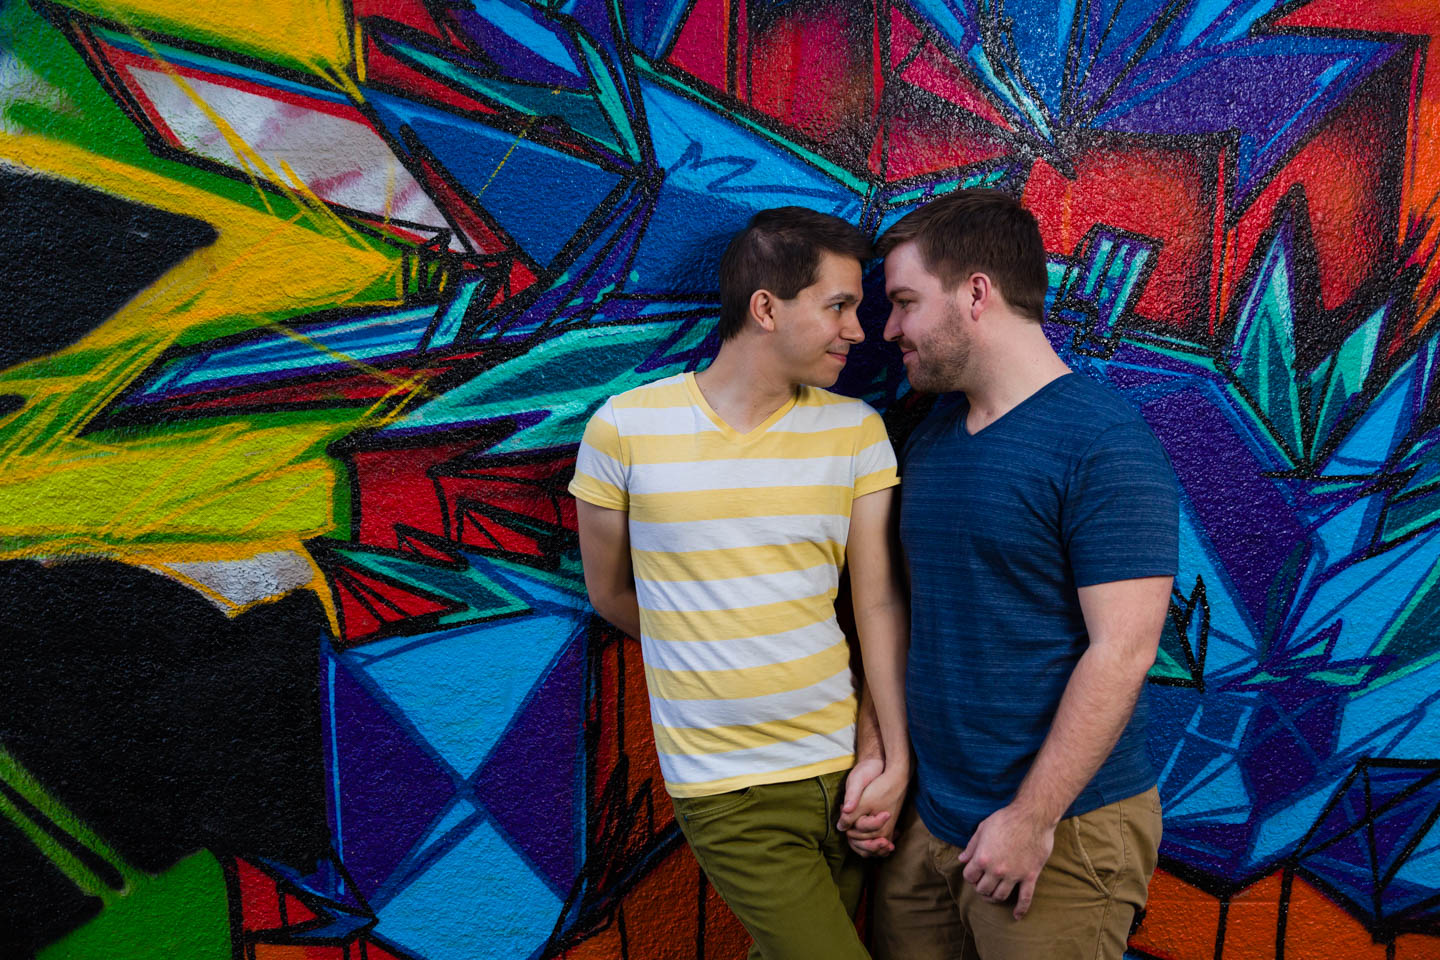 Lots of fun graffiti for portraits and it makes the photos look vivid with color and contrast